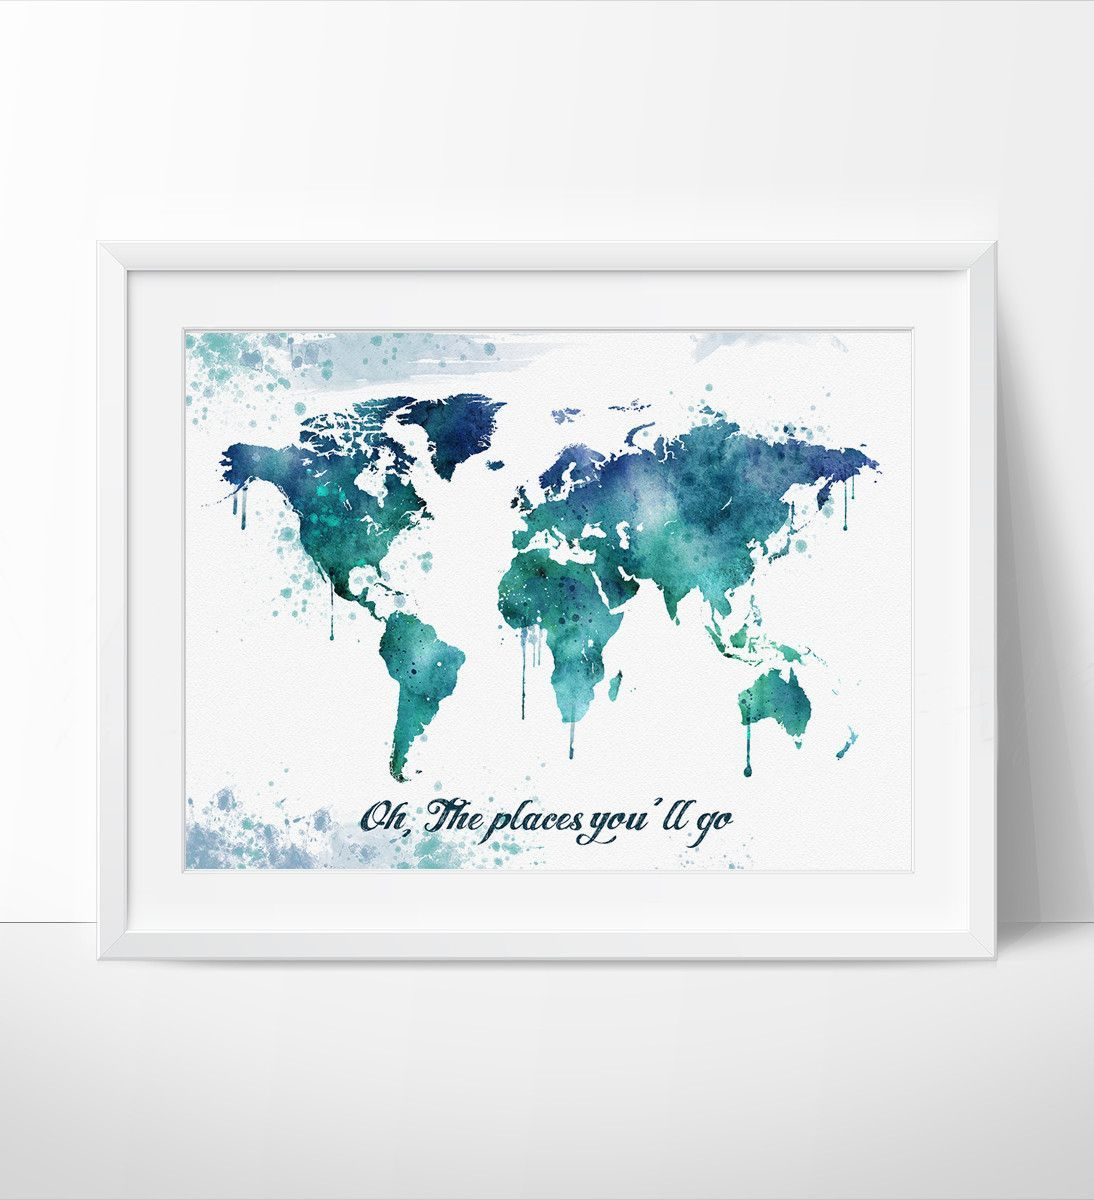 Watercolor map art world map poster large world map world map art watercolor map art world map poster large world map world map art gumiabroncs Images